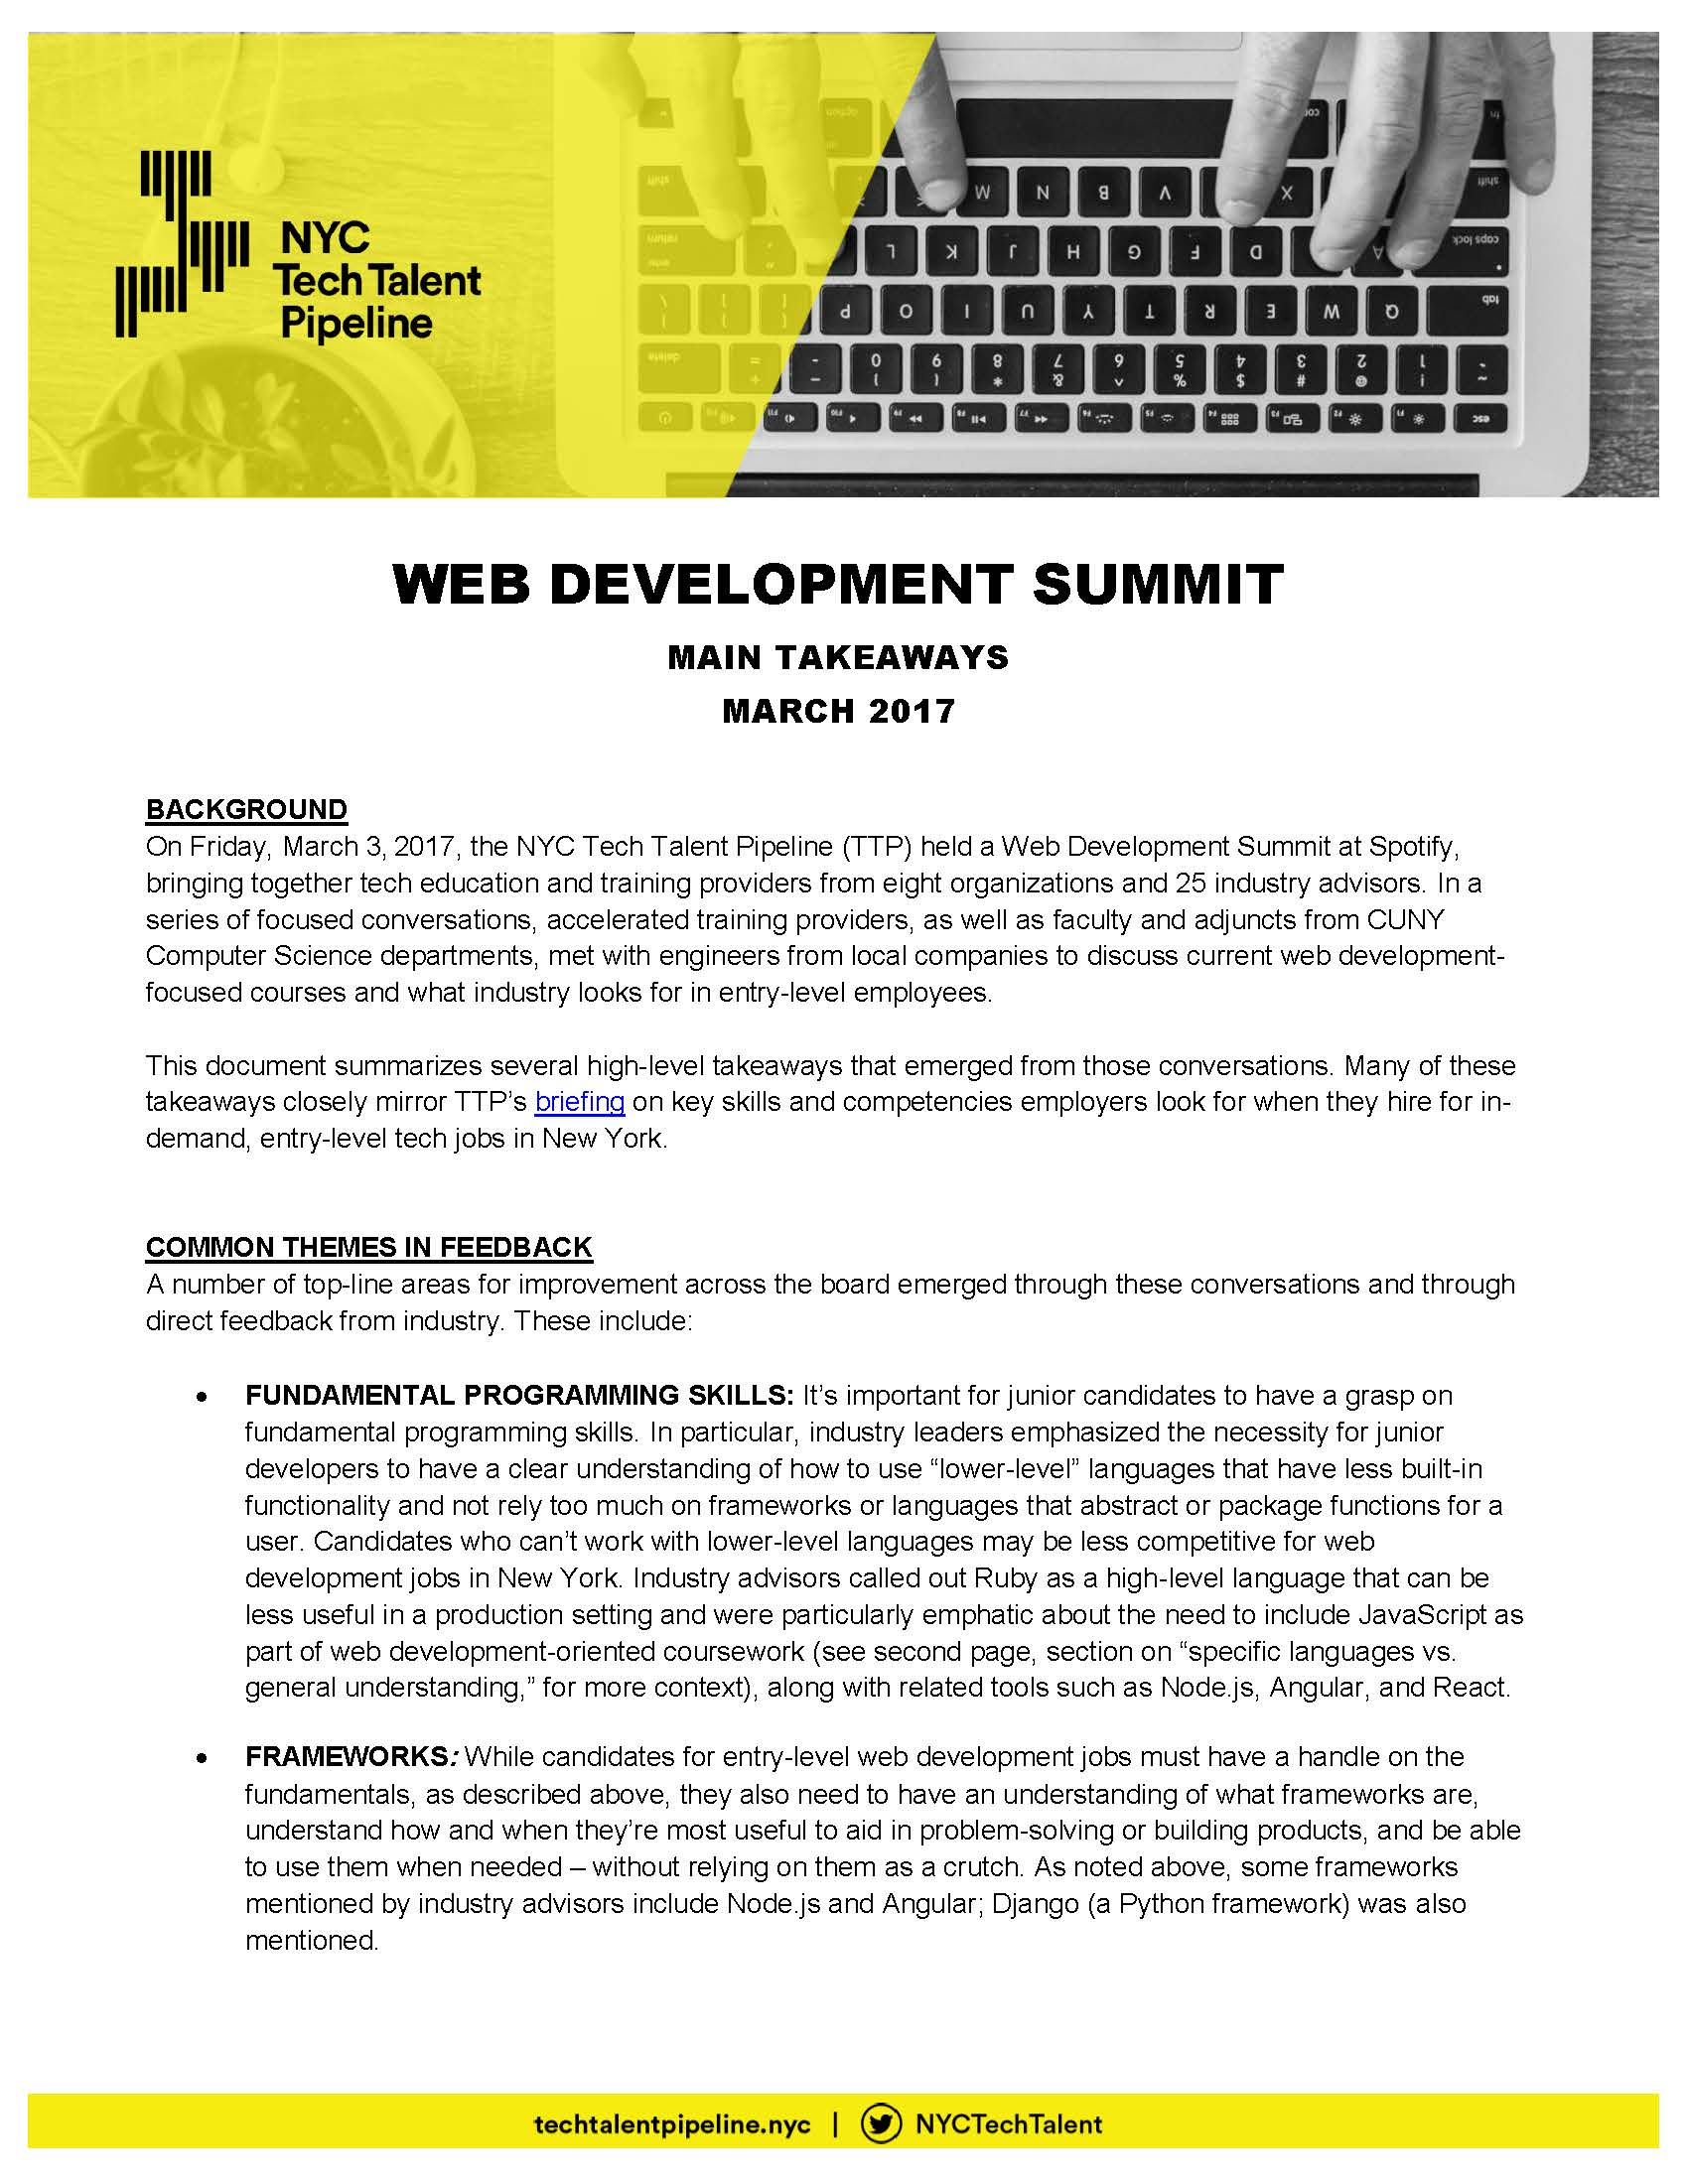 - This document summarizes several high-level takeaways that emerged from the March 2017 Web Development Summit.